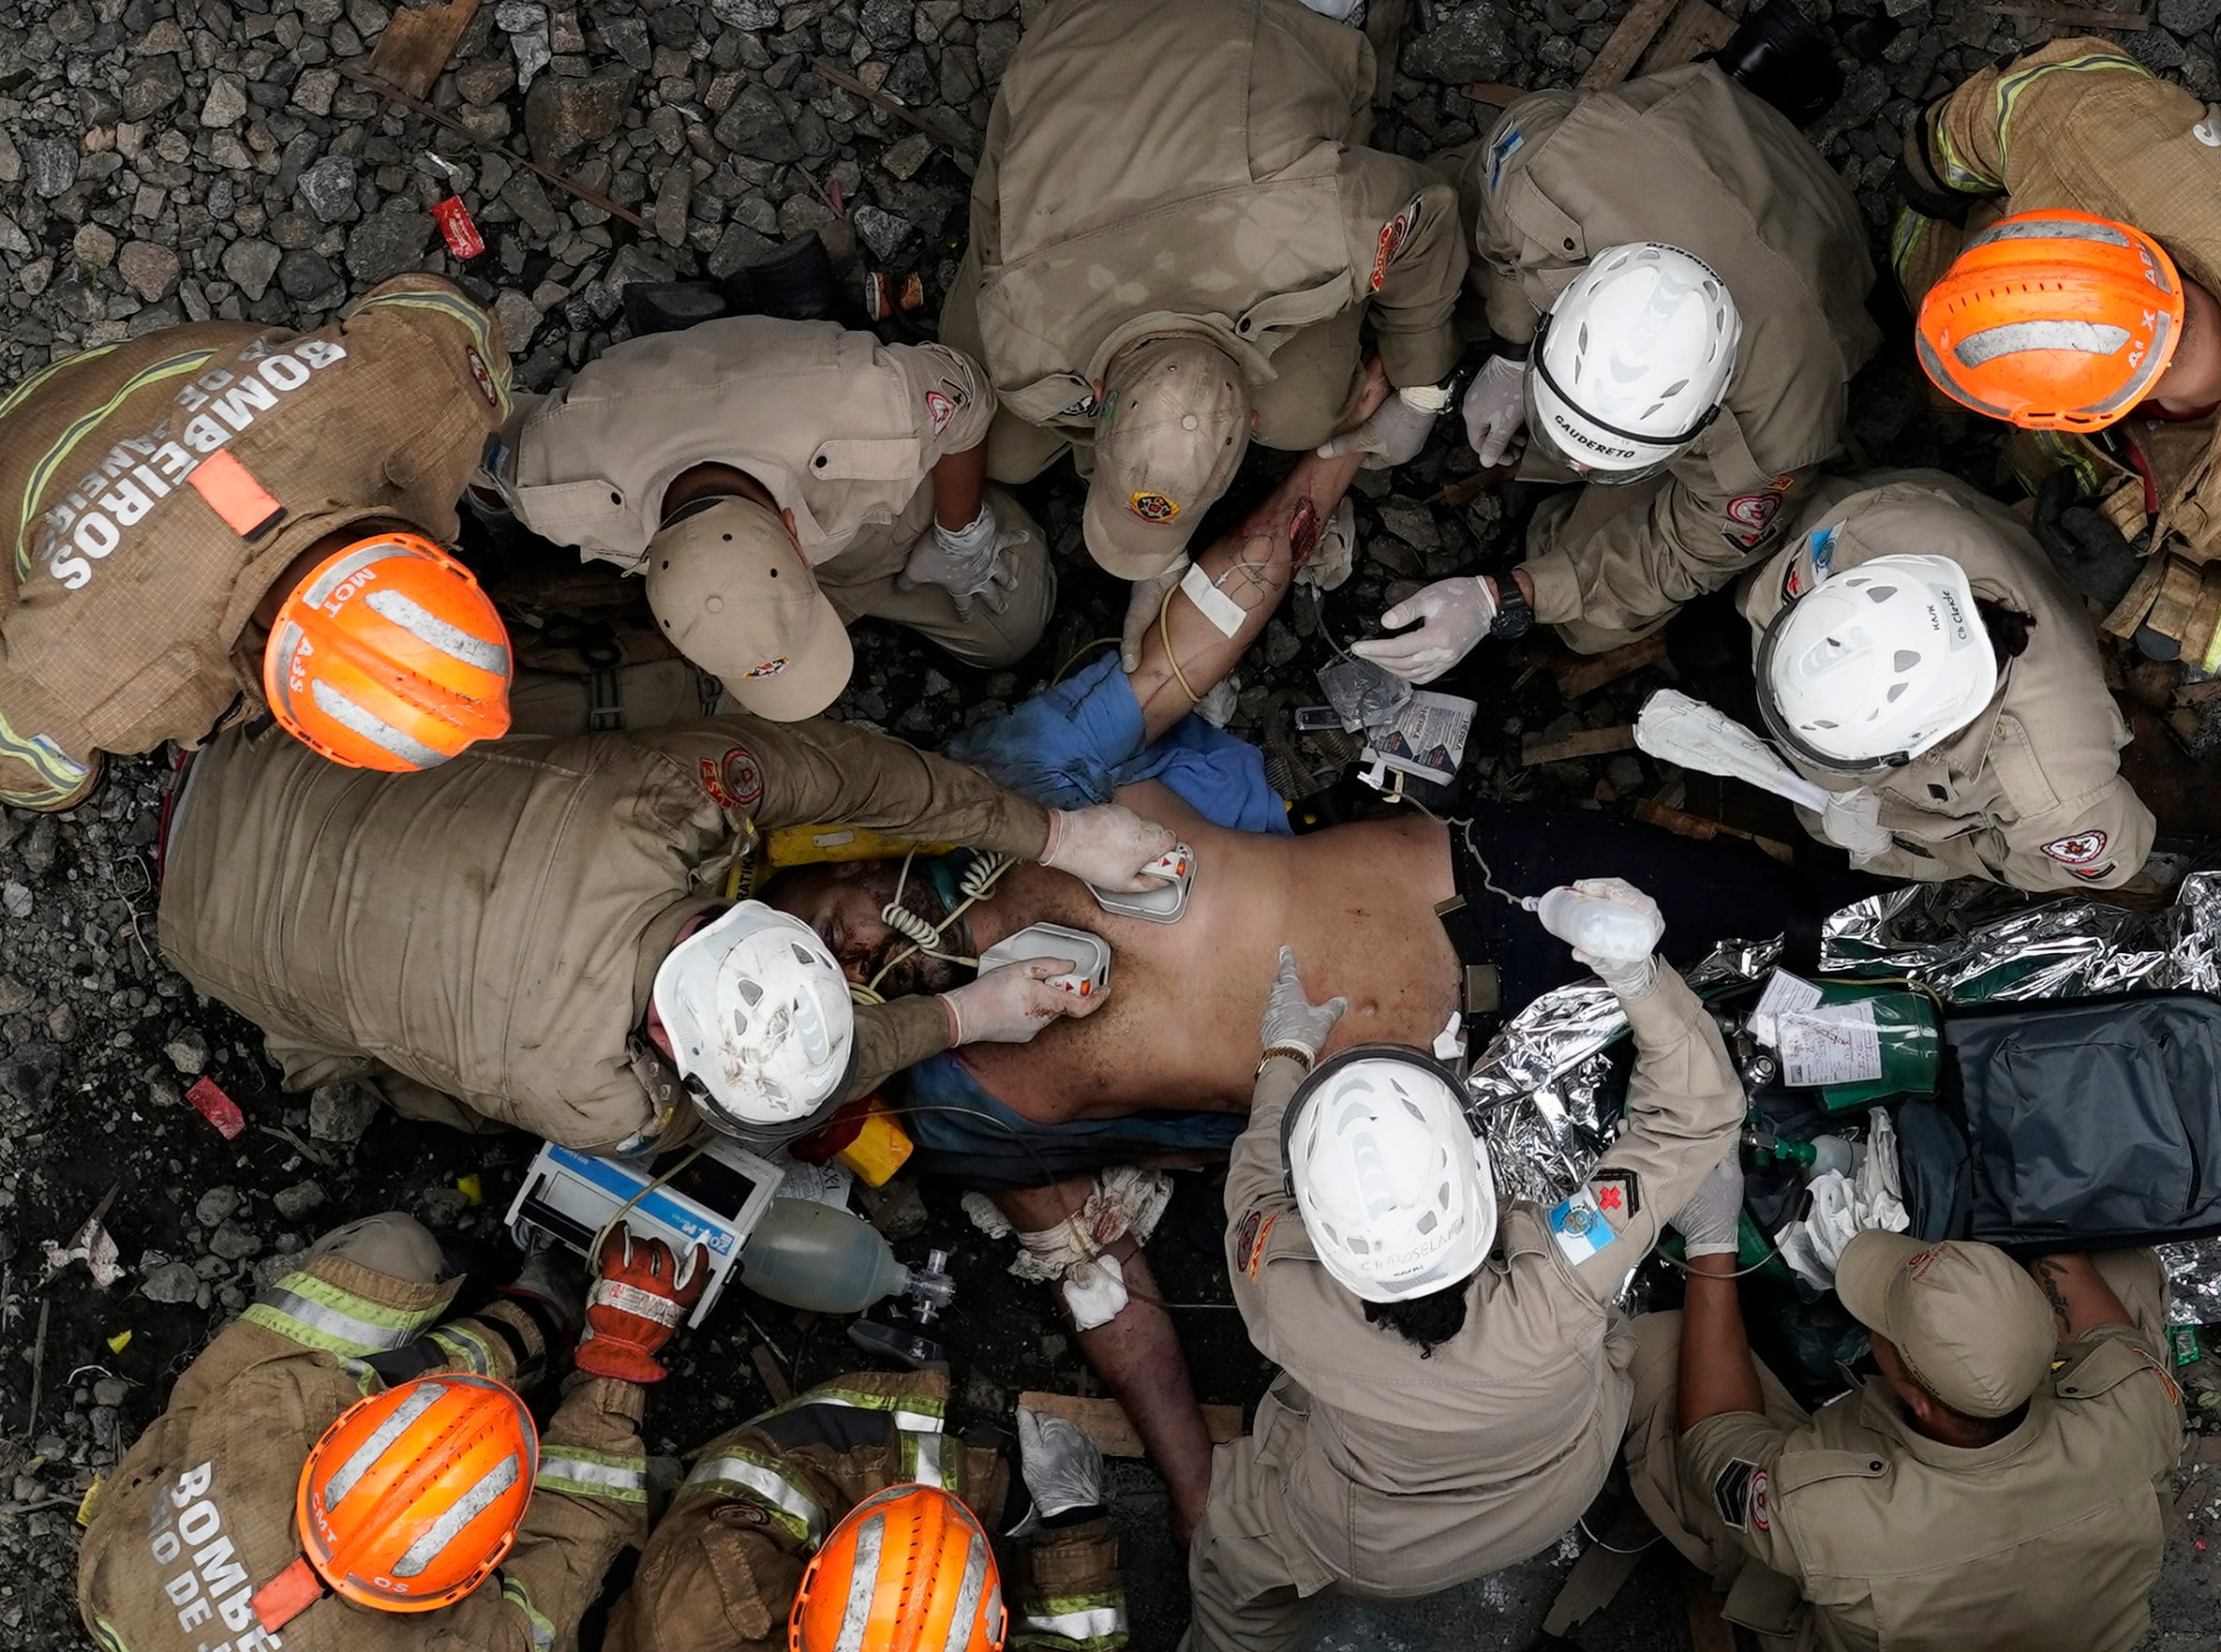 Firefighters work to resuscitate the driver of a commuter train that collided  with another train in Sao Cristovao station, in Rio de Janeiro, Brazil, Wednesday, Feb. 27, 2019. Firefighters worked for over six hours to rescue the train's driver, who was caught under the wreckage.